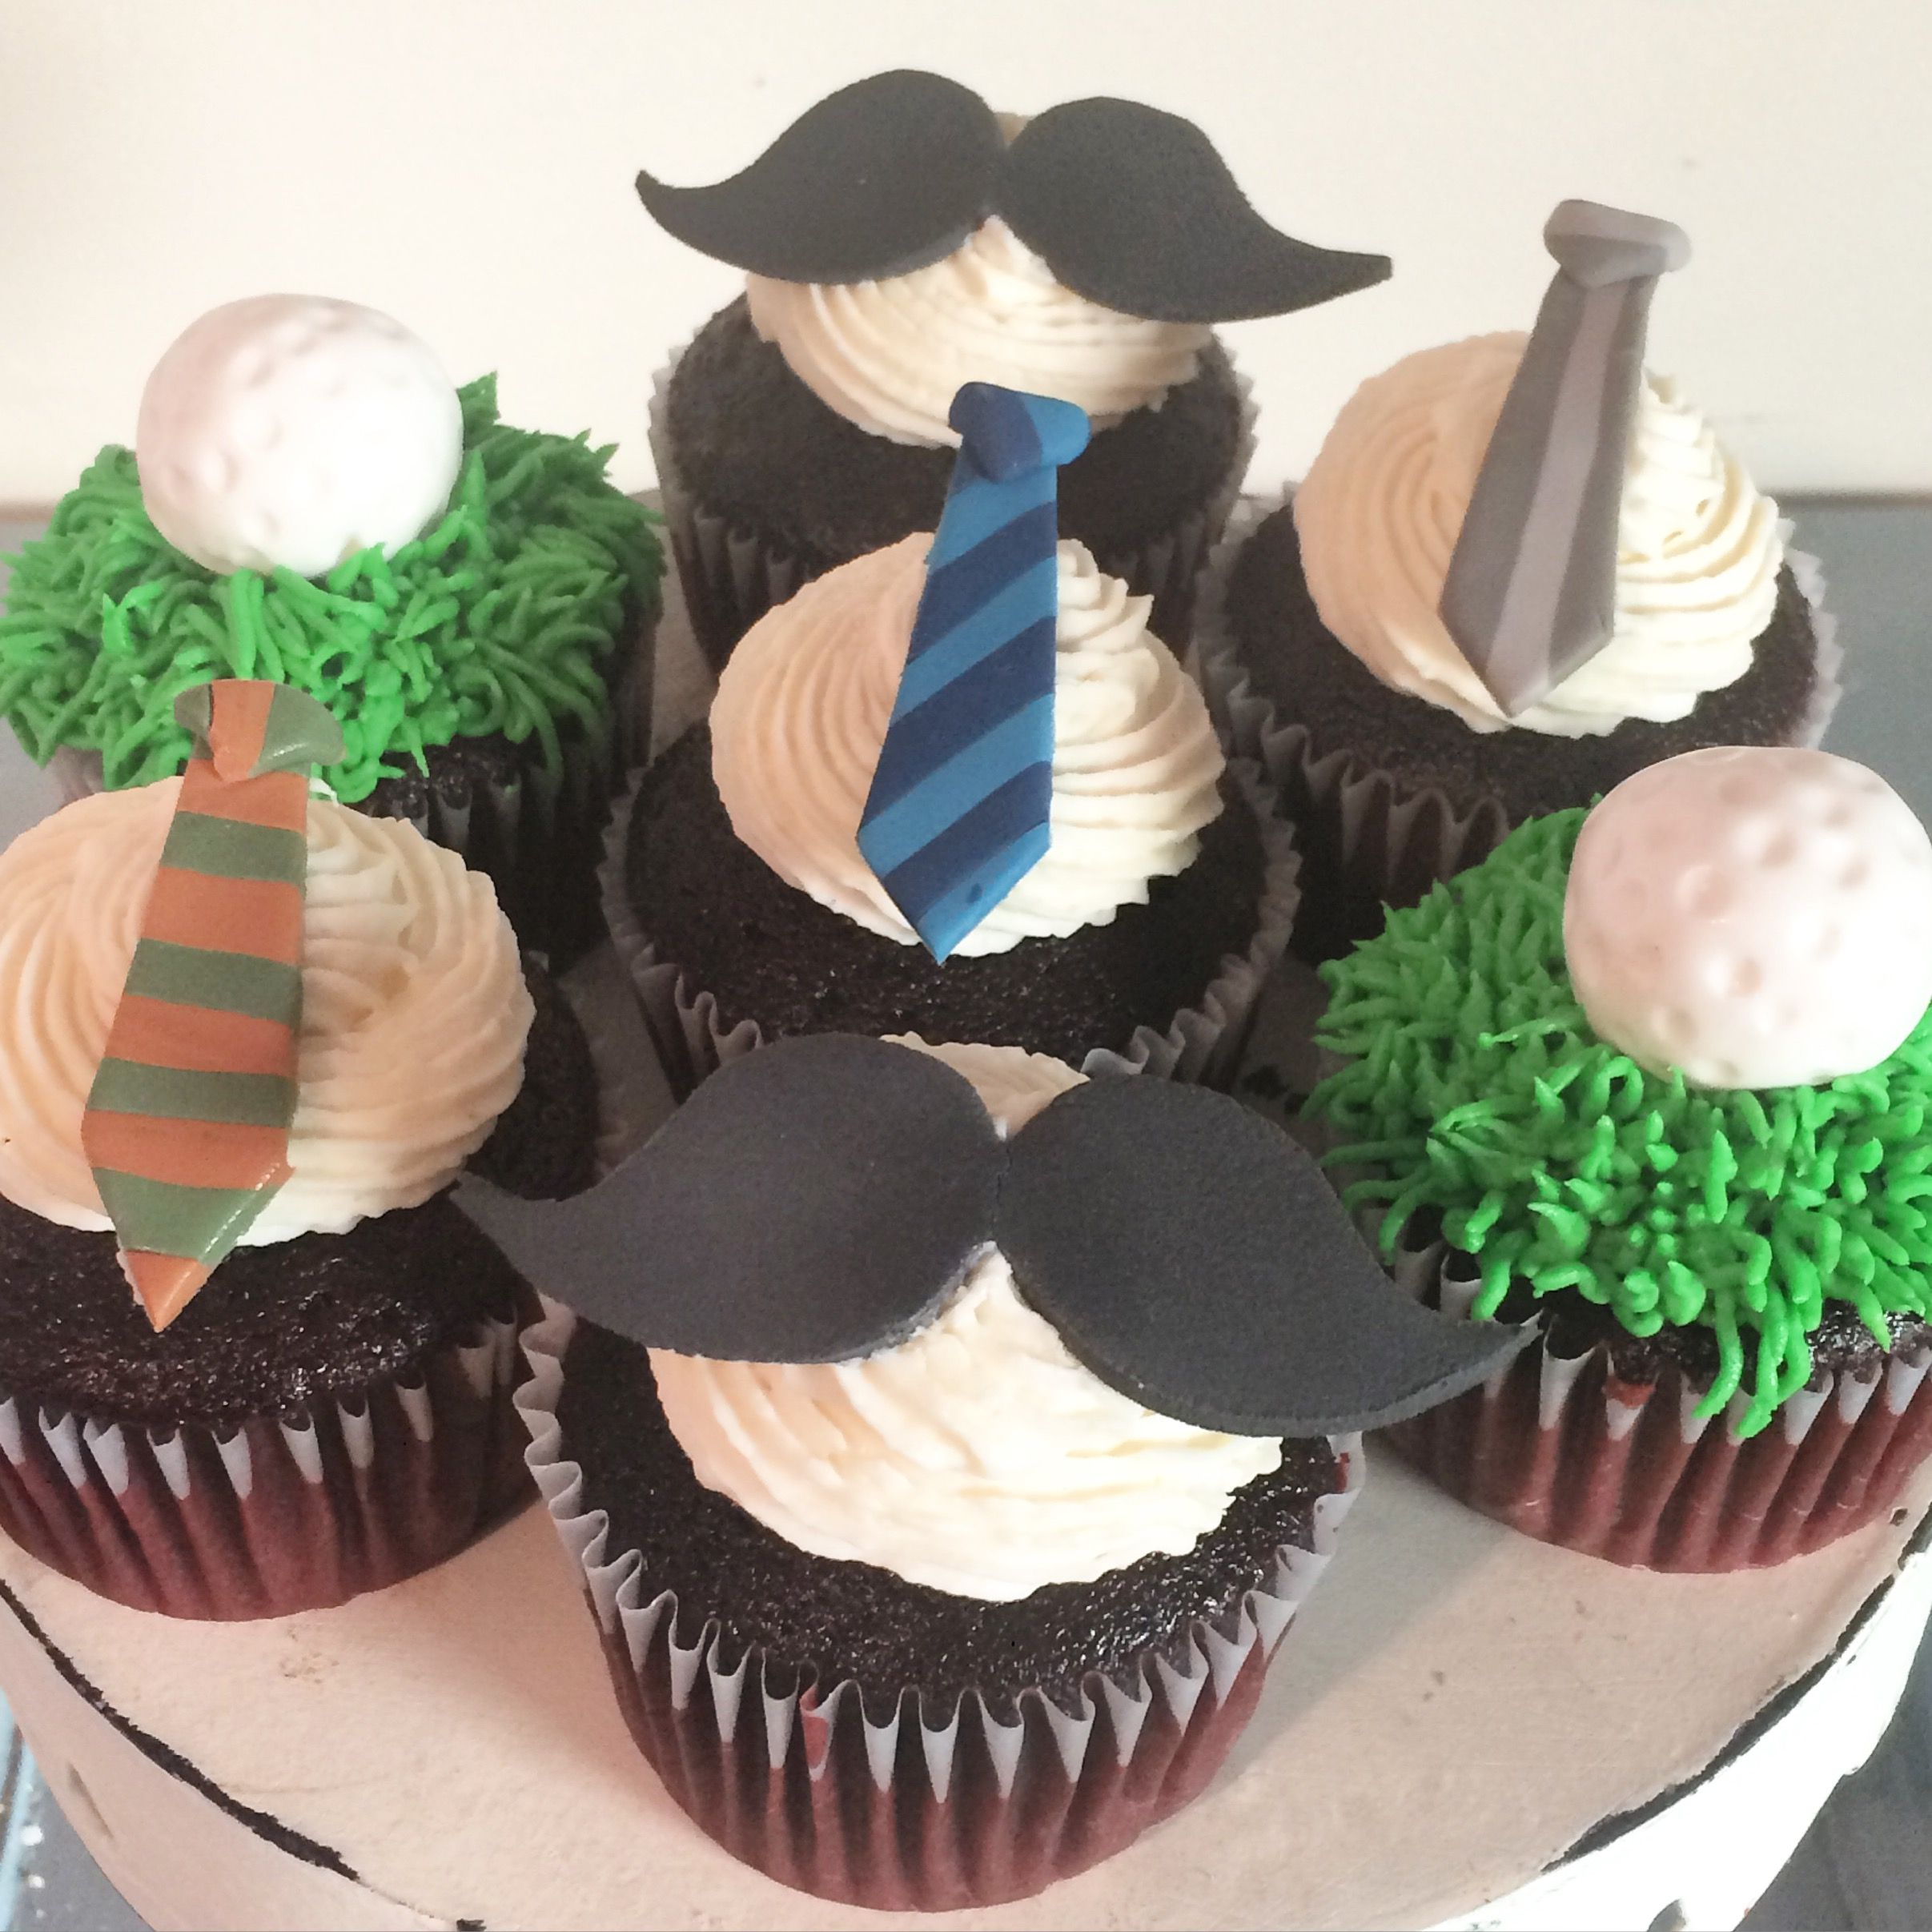 Father's Day cupcakes with ties, mustaches, golf balls